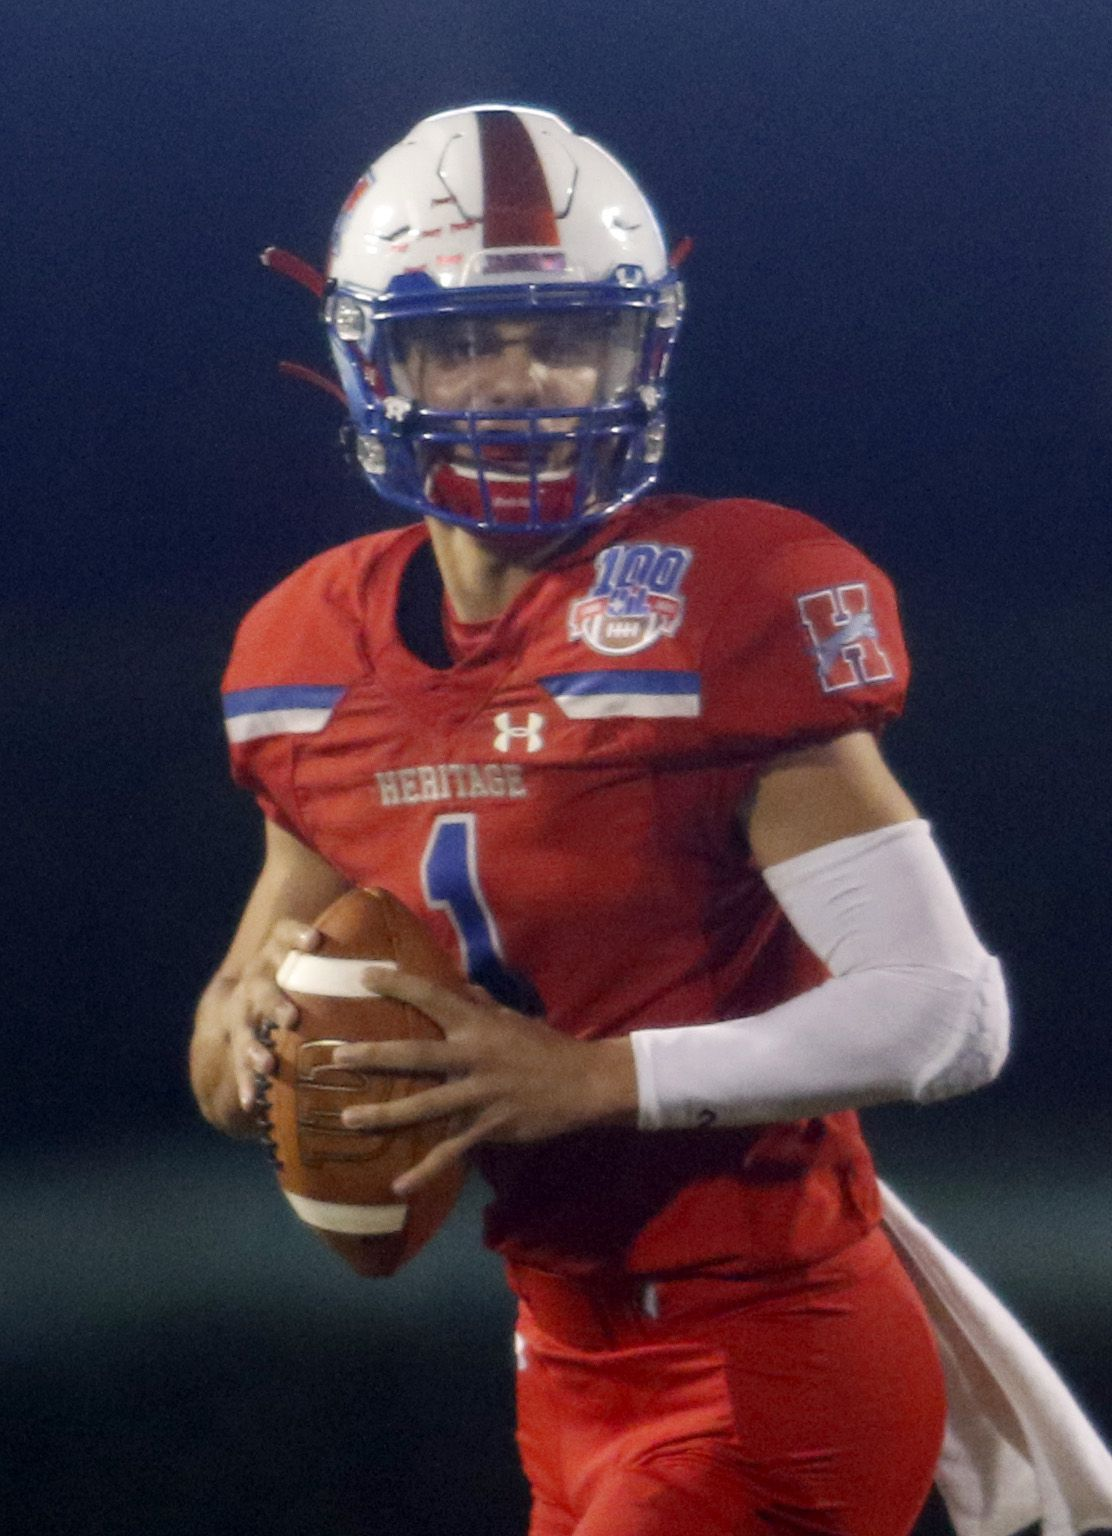 Midlothian Heritage quarterback Daelin Rader (1) looks for a receiver during second quarter action against Lindale. The two teams played their Class 4A football game at Midlothian ISD Multipurpose Stadium in Midlothian on September 4, 2020. (Steve Hamm/ Special Contributor)